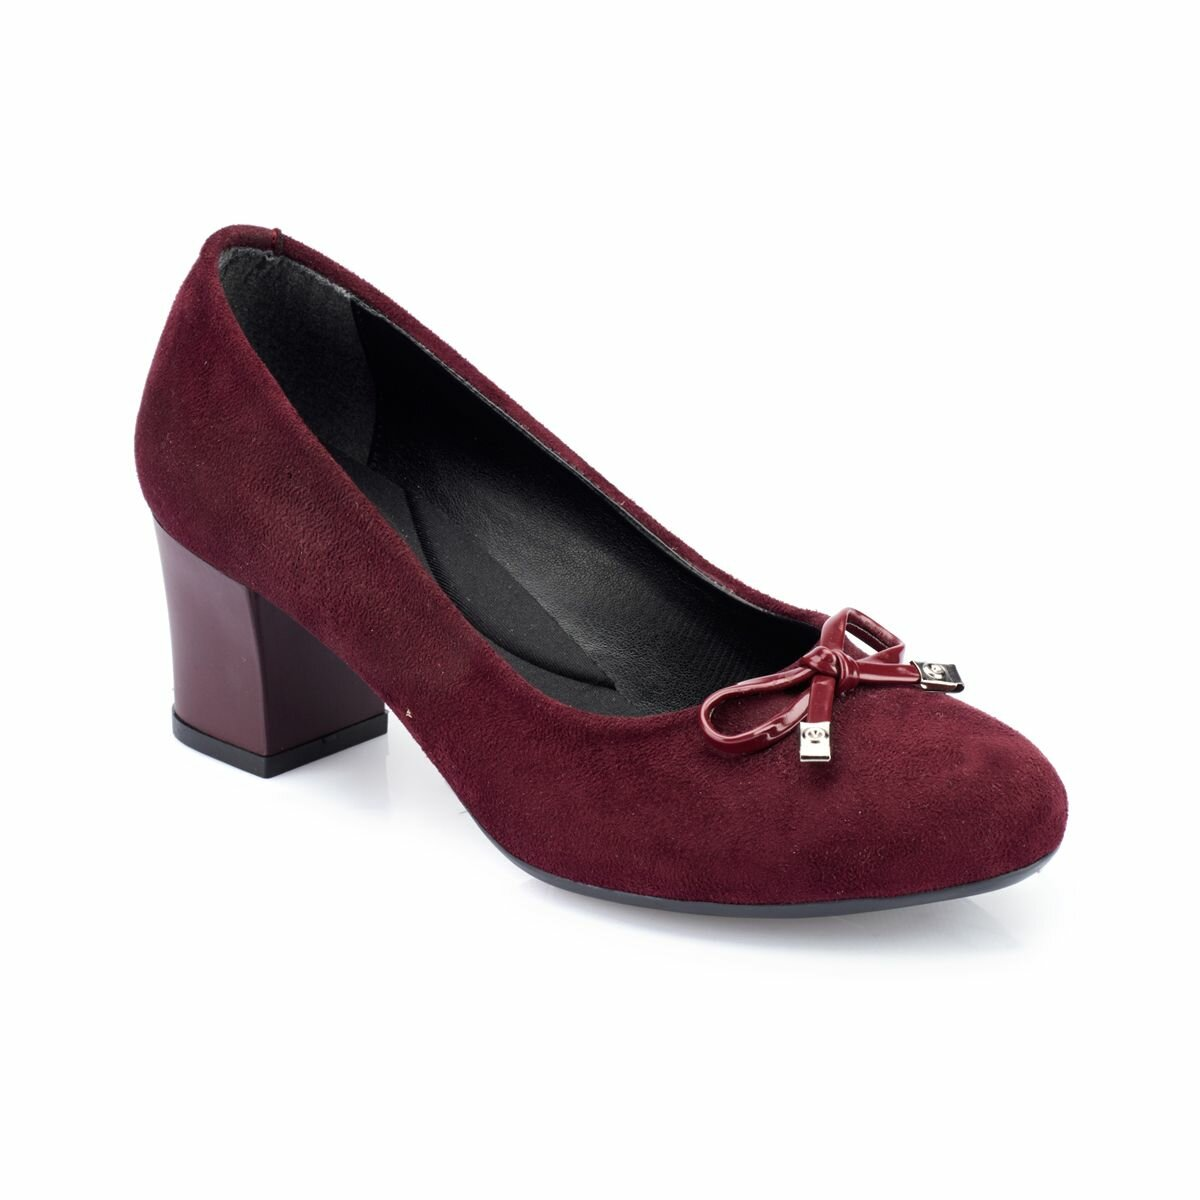 FLO 82.312086SZ Burgundy Women Gova Shoes Polaris